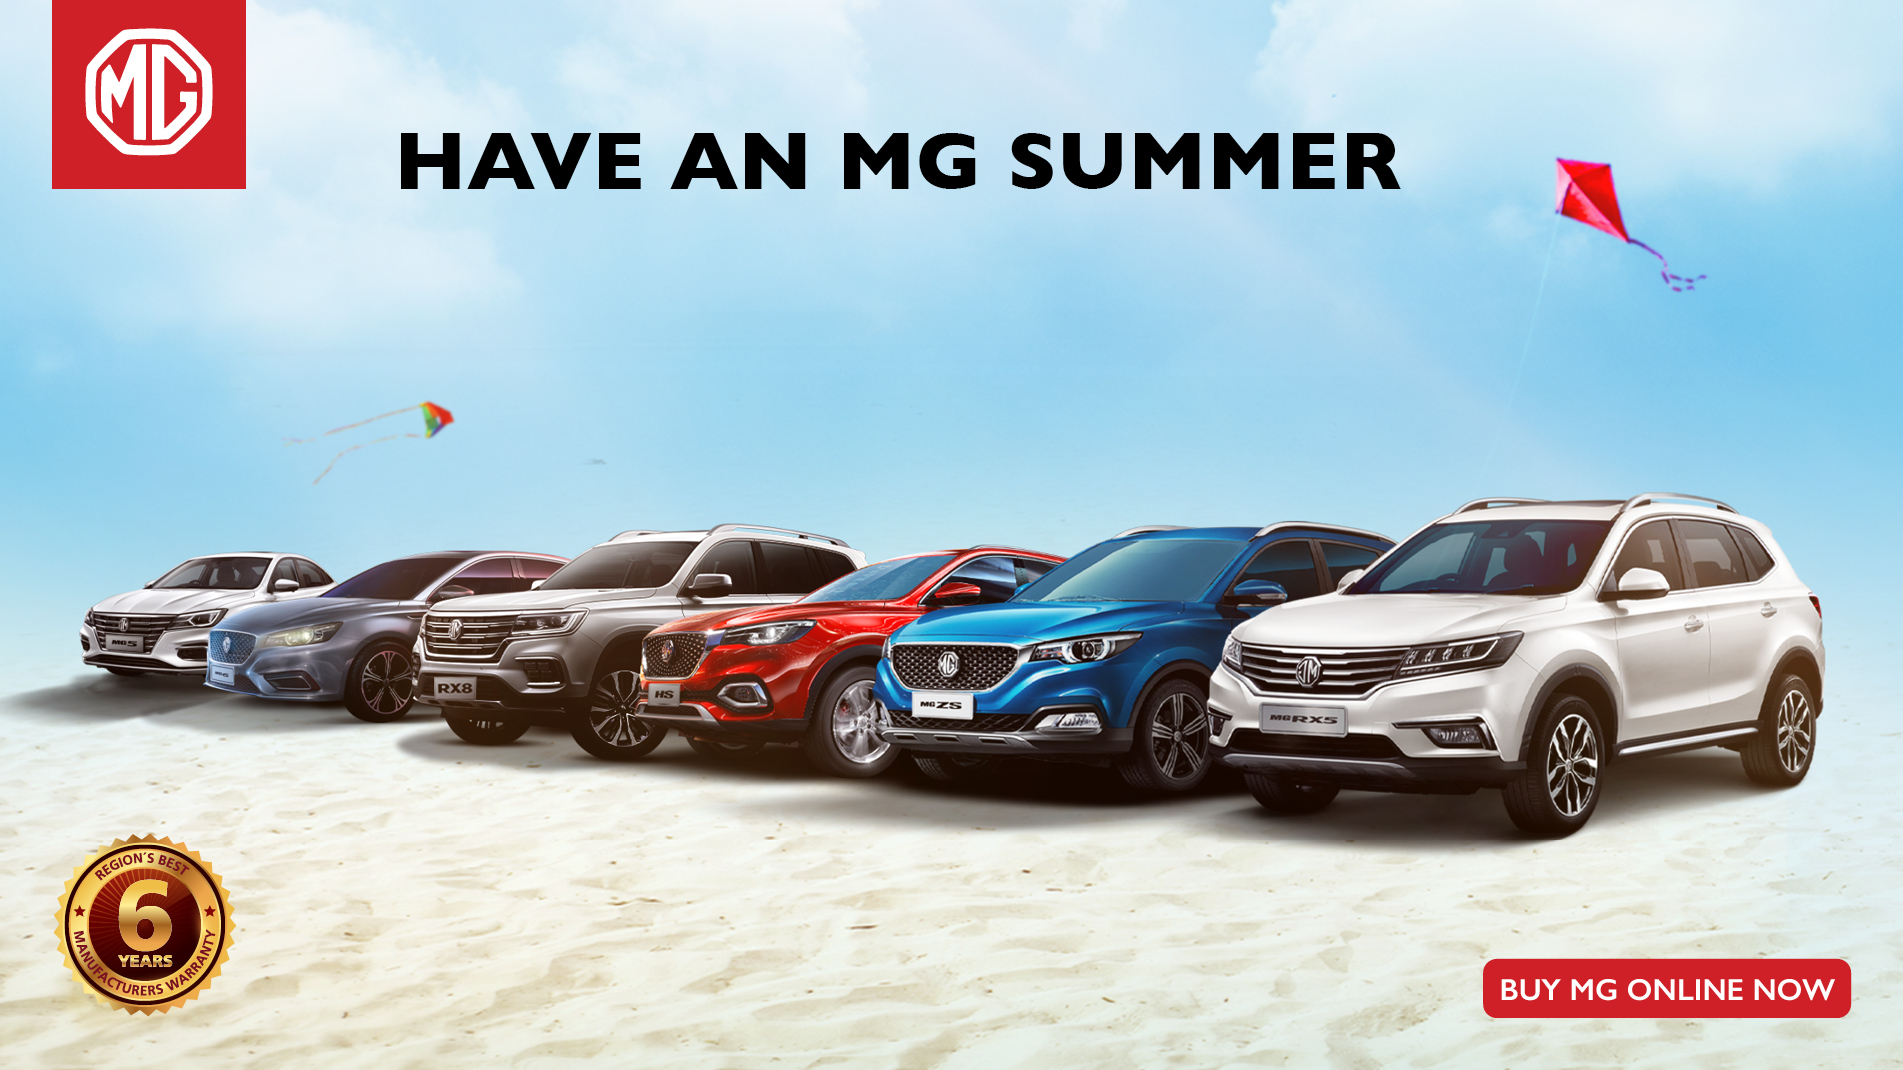 'Zayani Motors' Launches Exclusive Summer Offers on All 'MG' Models